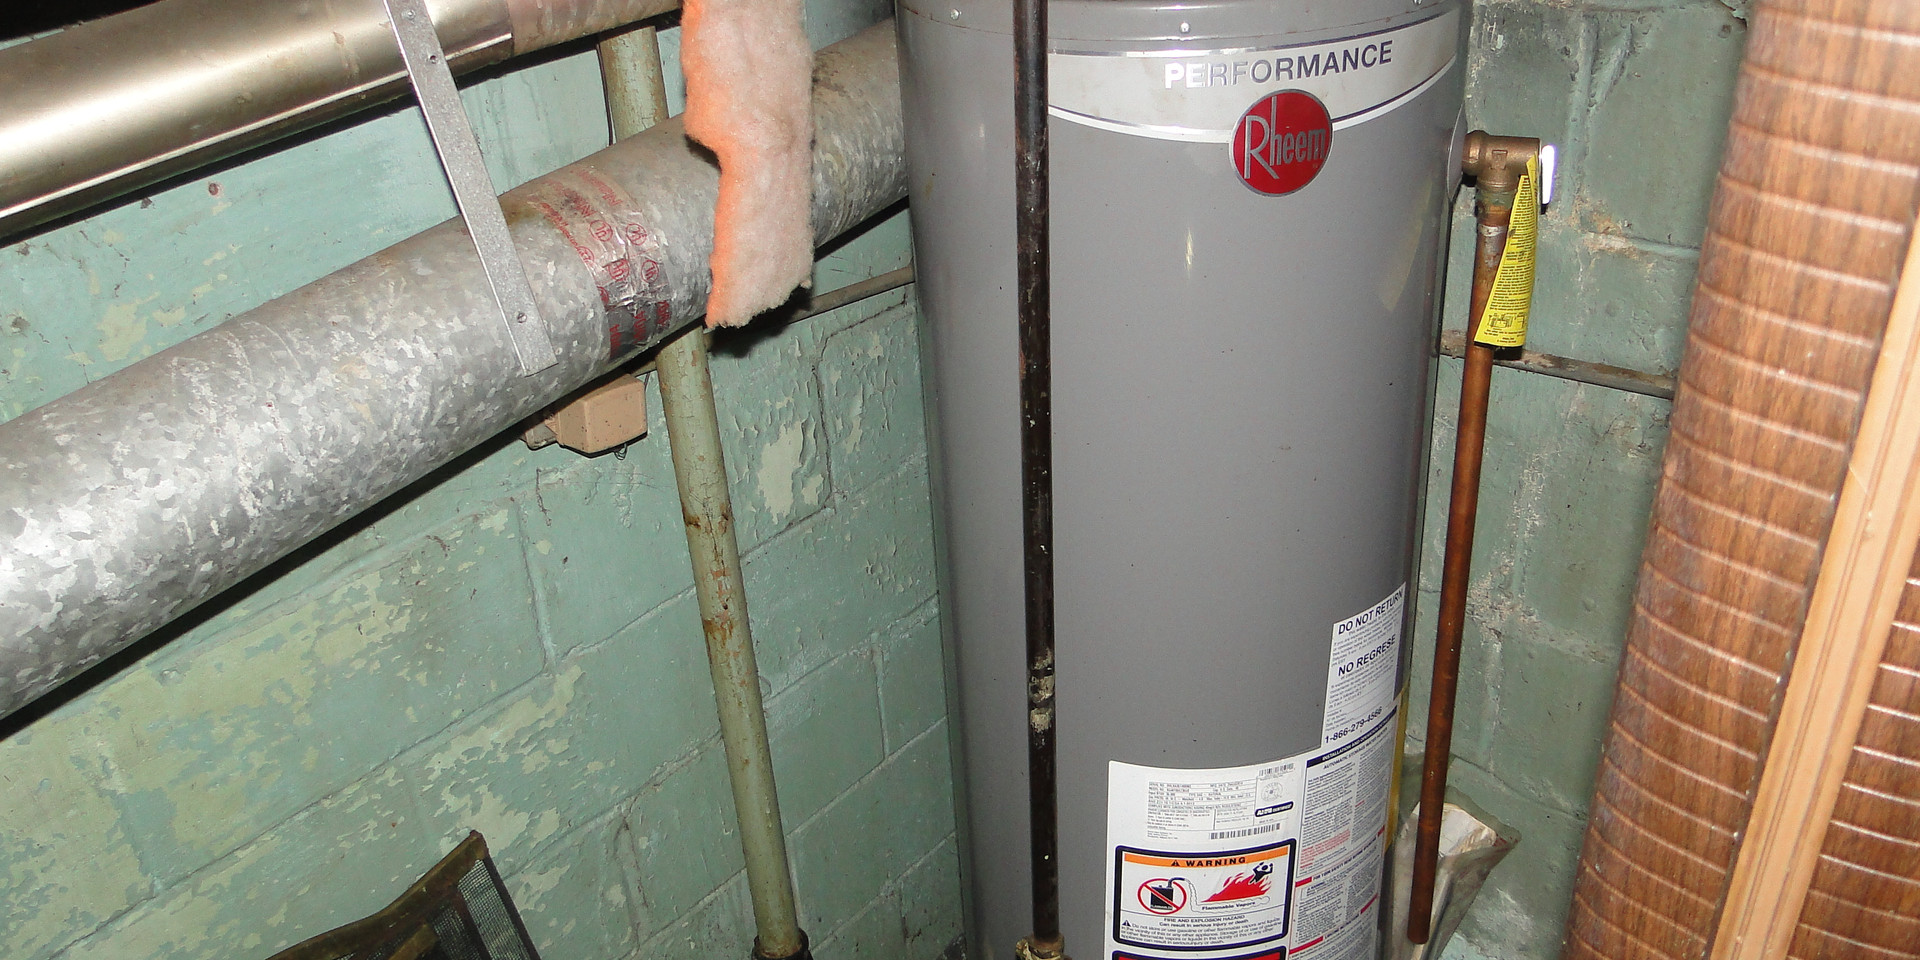 17 - Hot Water Heater 1.JPG